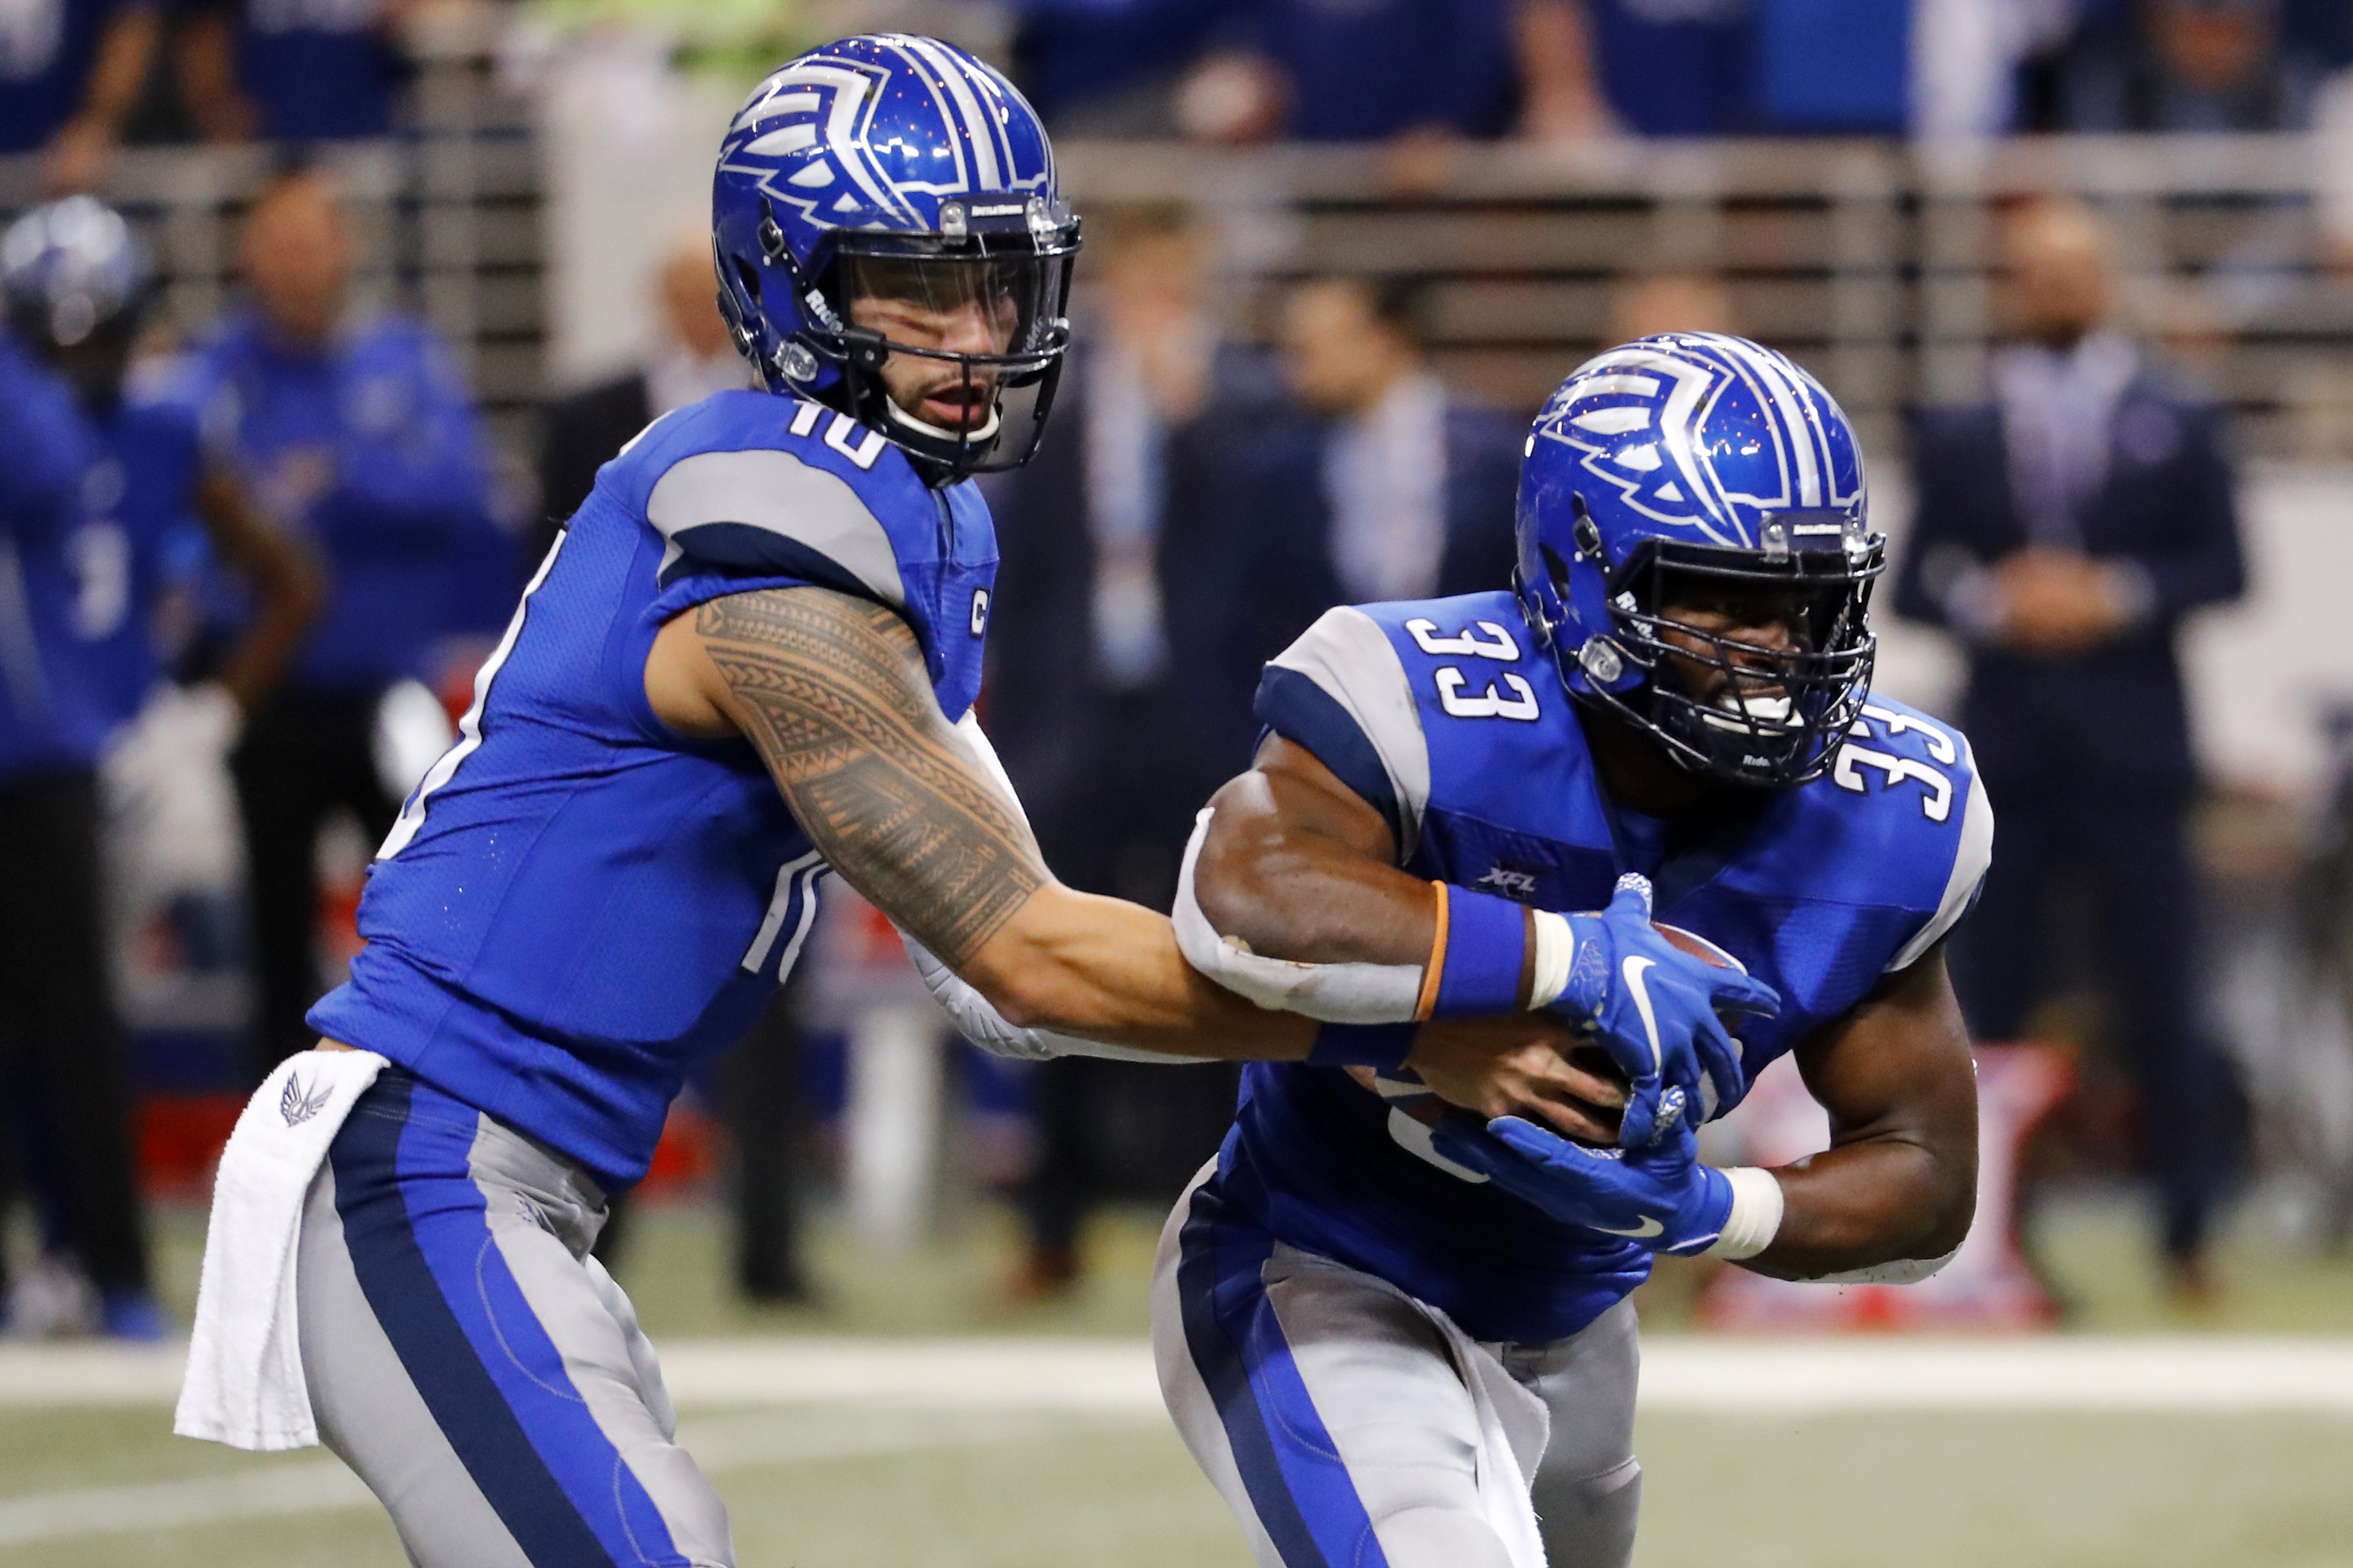 Aggies In The XFL: Michael Makes St.Louis History With First TD Back In Dome